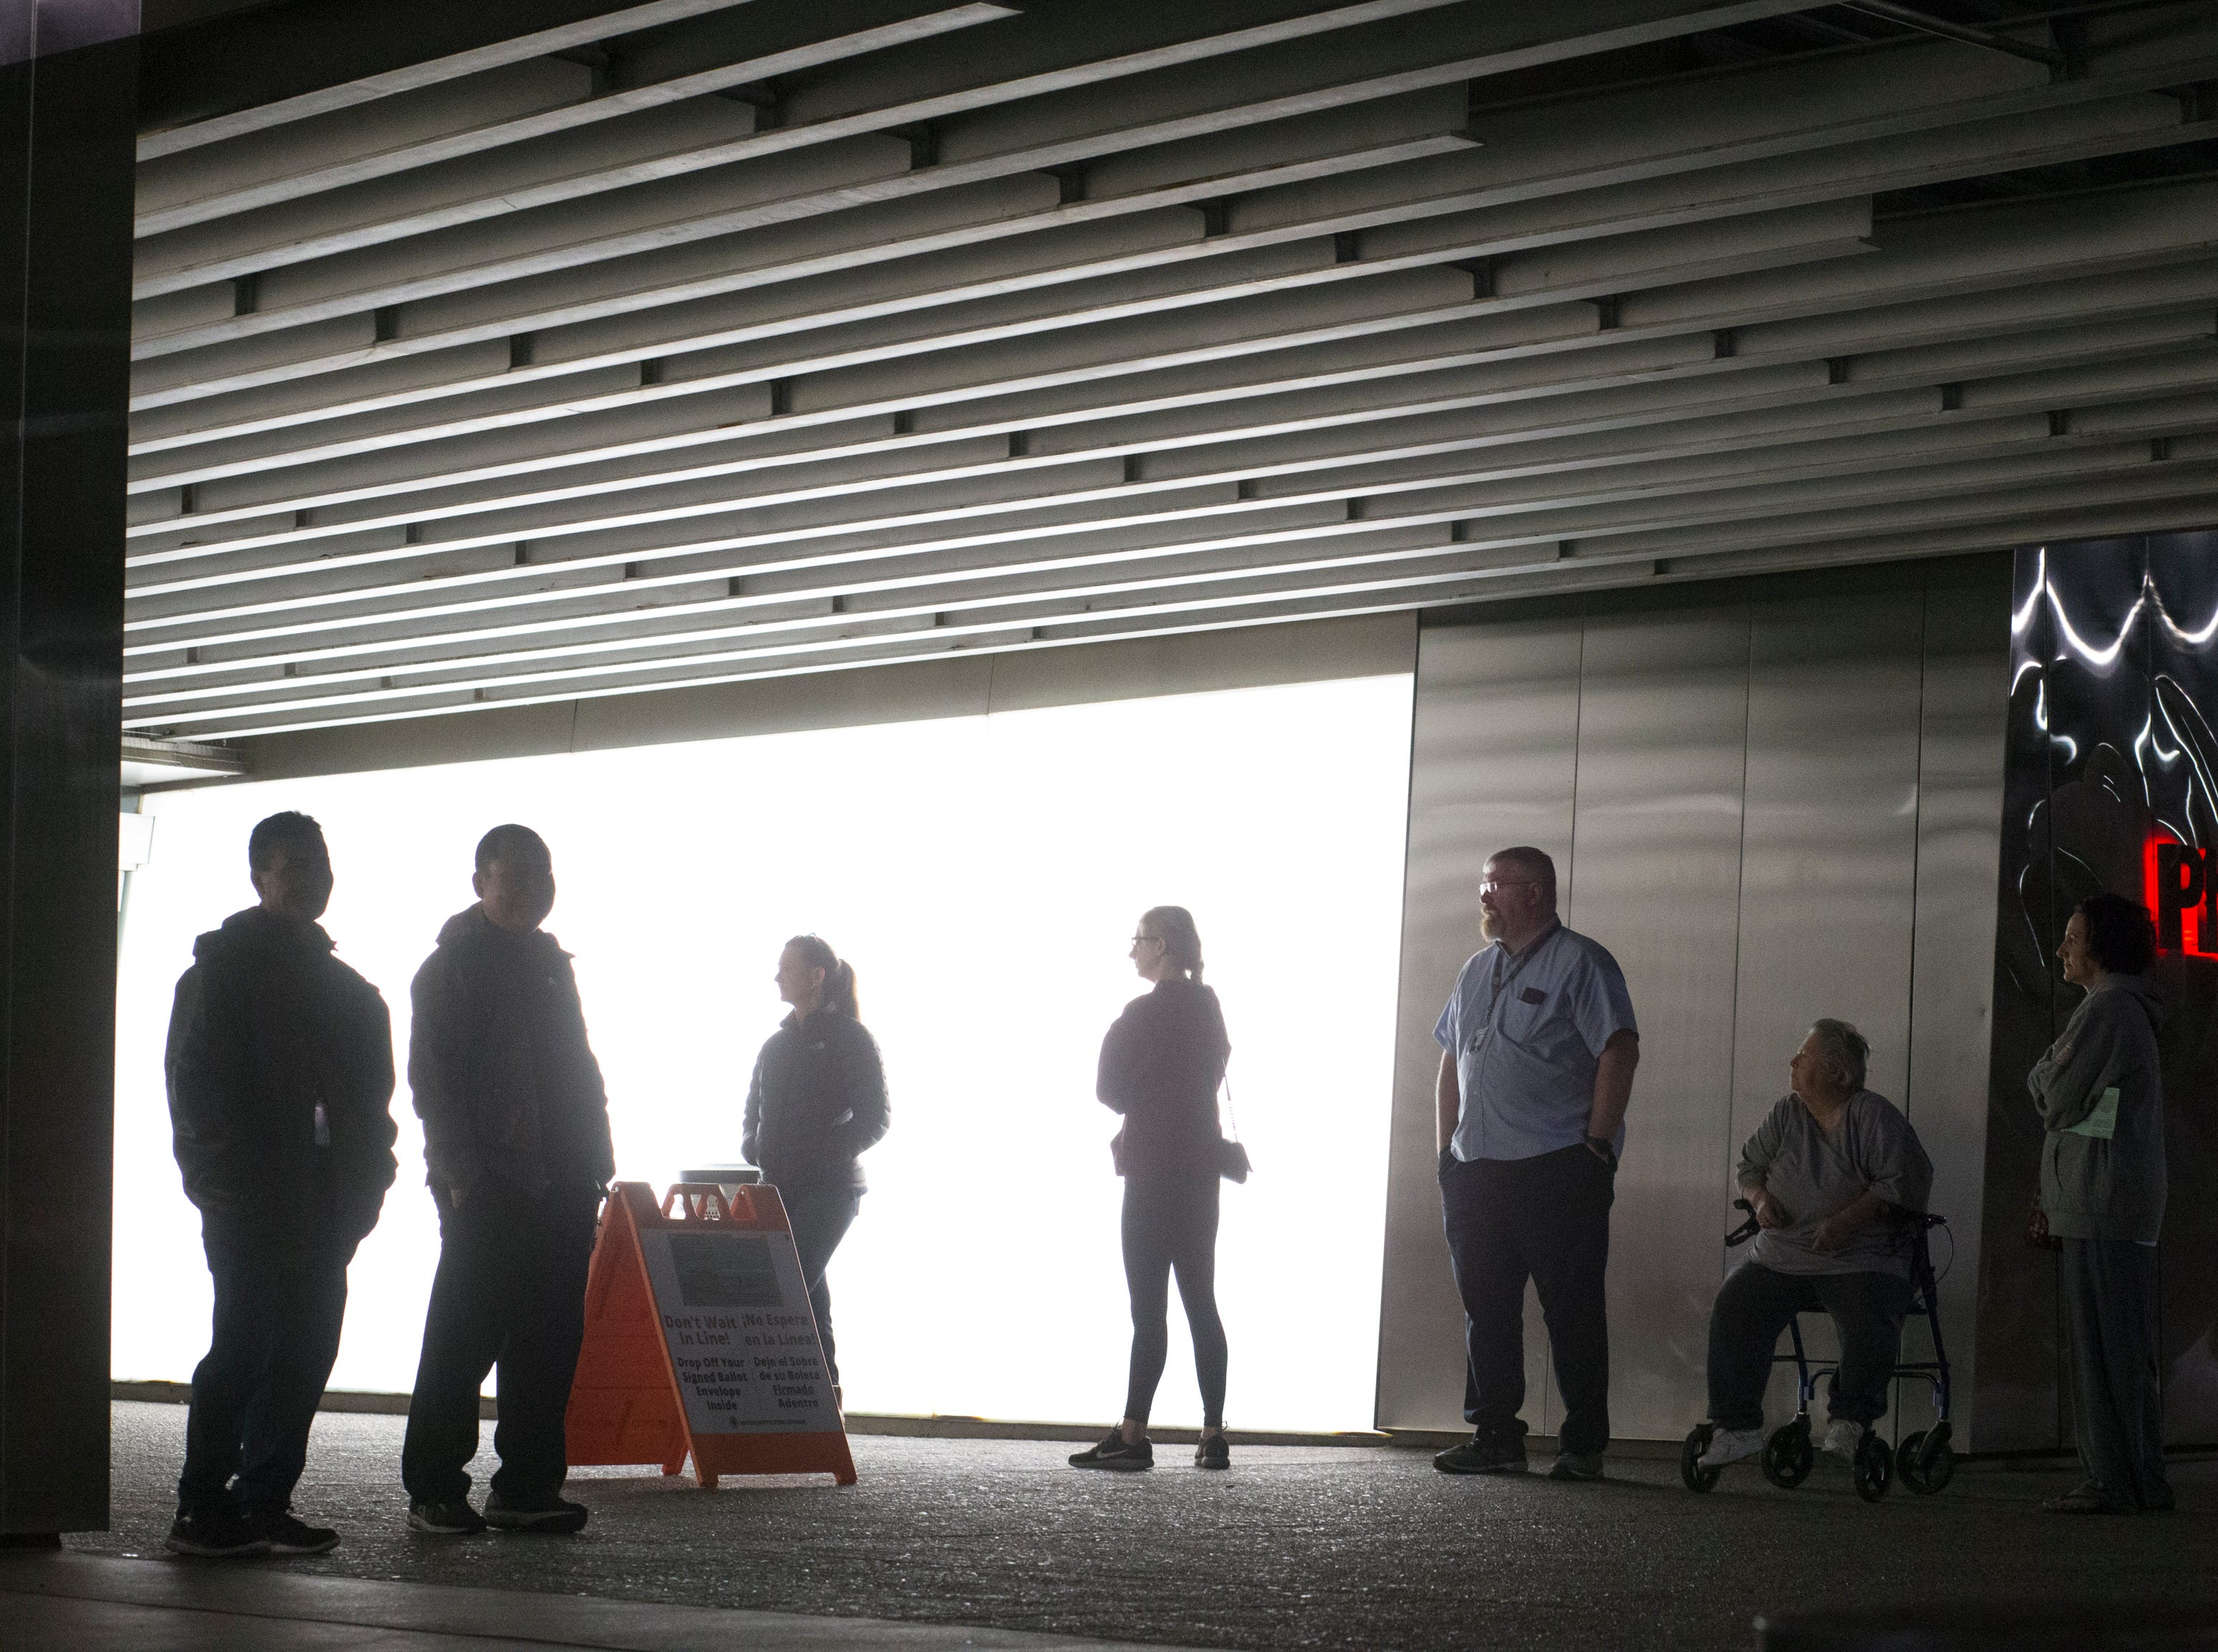 Voters wait for the polls to open, Nov. 6, 2018, at the Burton Barr Library, 1221 N. Central Ave. in Phoenix.